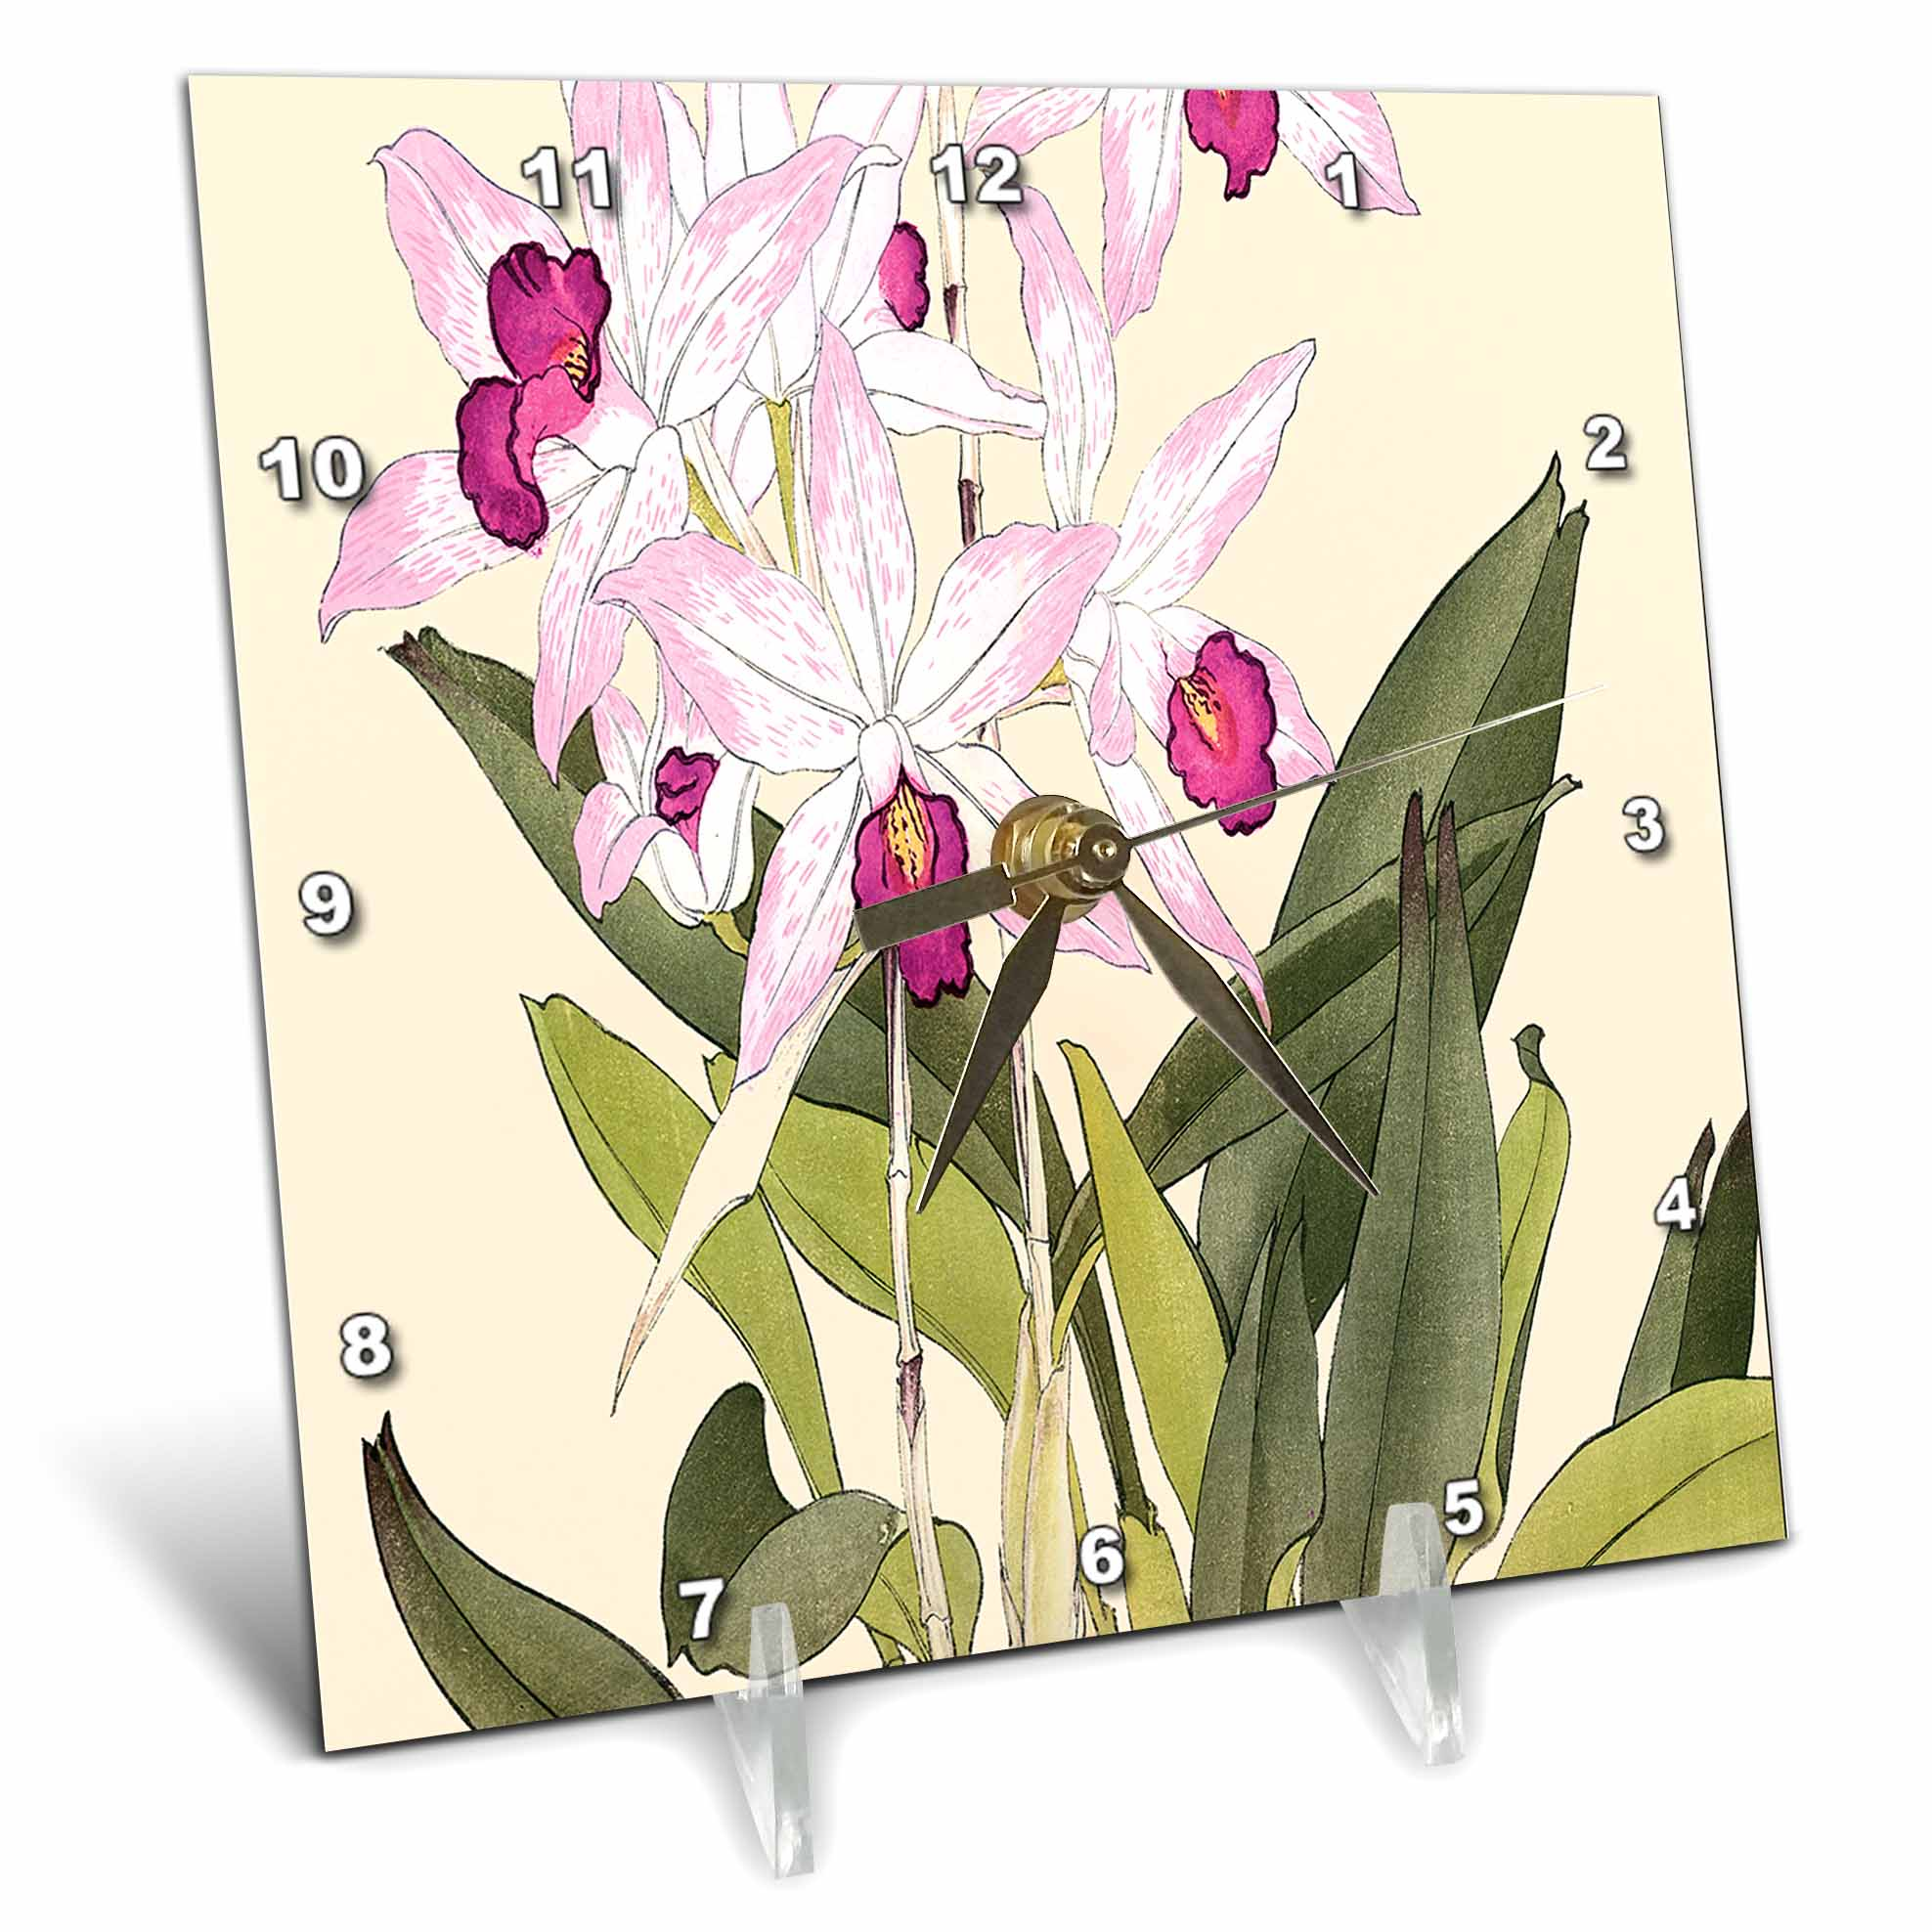 3dRose Pretty Light and Dark Pink Laelia Anceps Orchids, Desk Clock, 6 by 6-inch by 3dRose